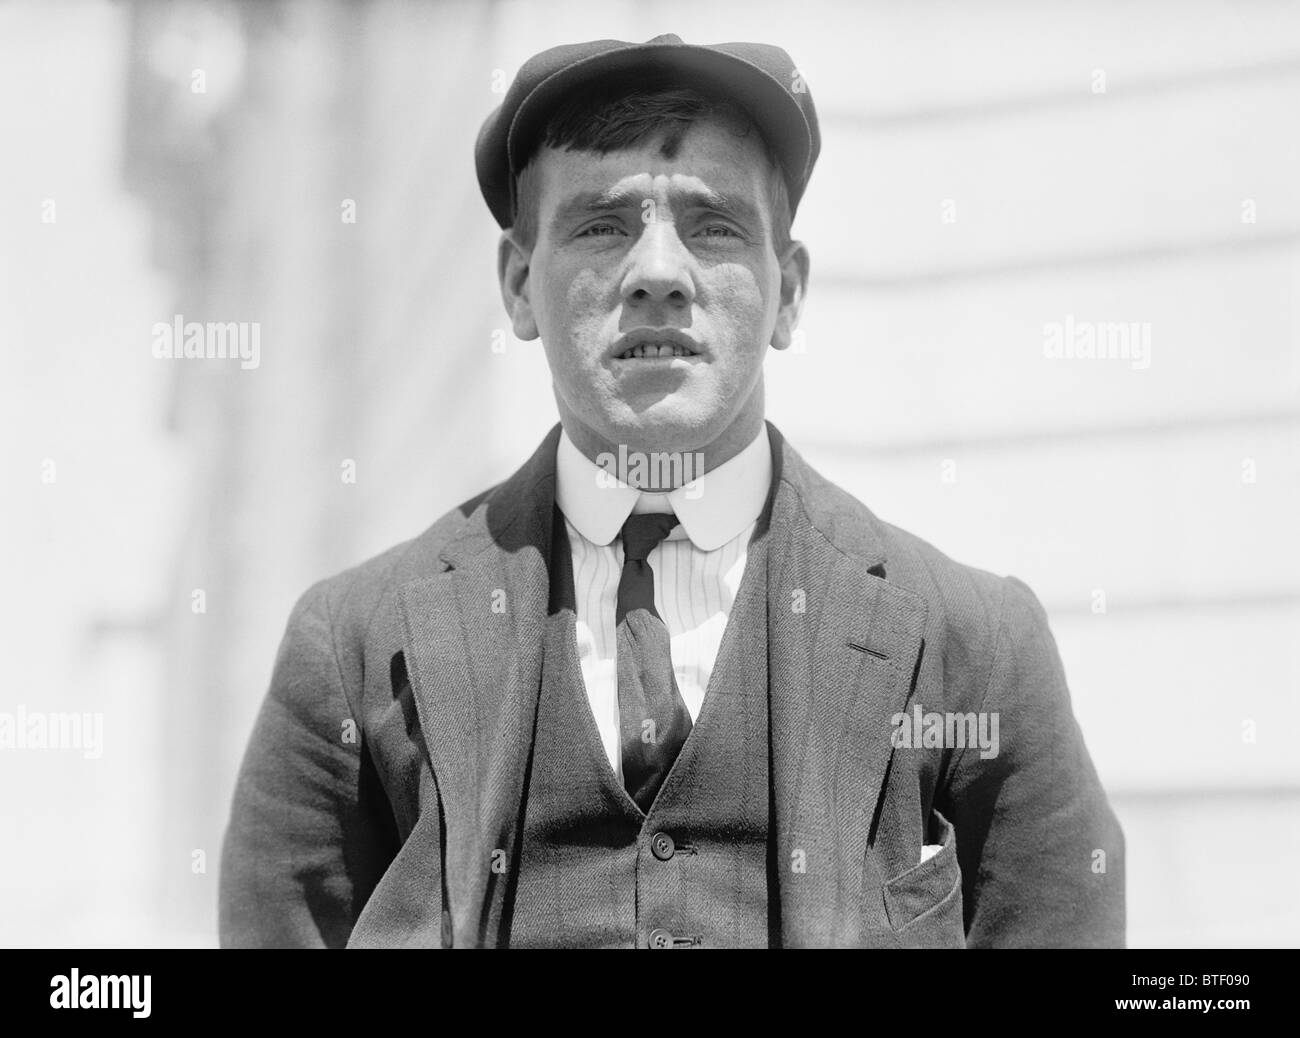 Vintage photo c1912 of Titanic survivor Frederick Fleet - the lookout who spotted the iceberg which sank the ship - Stock Image